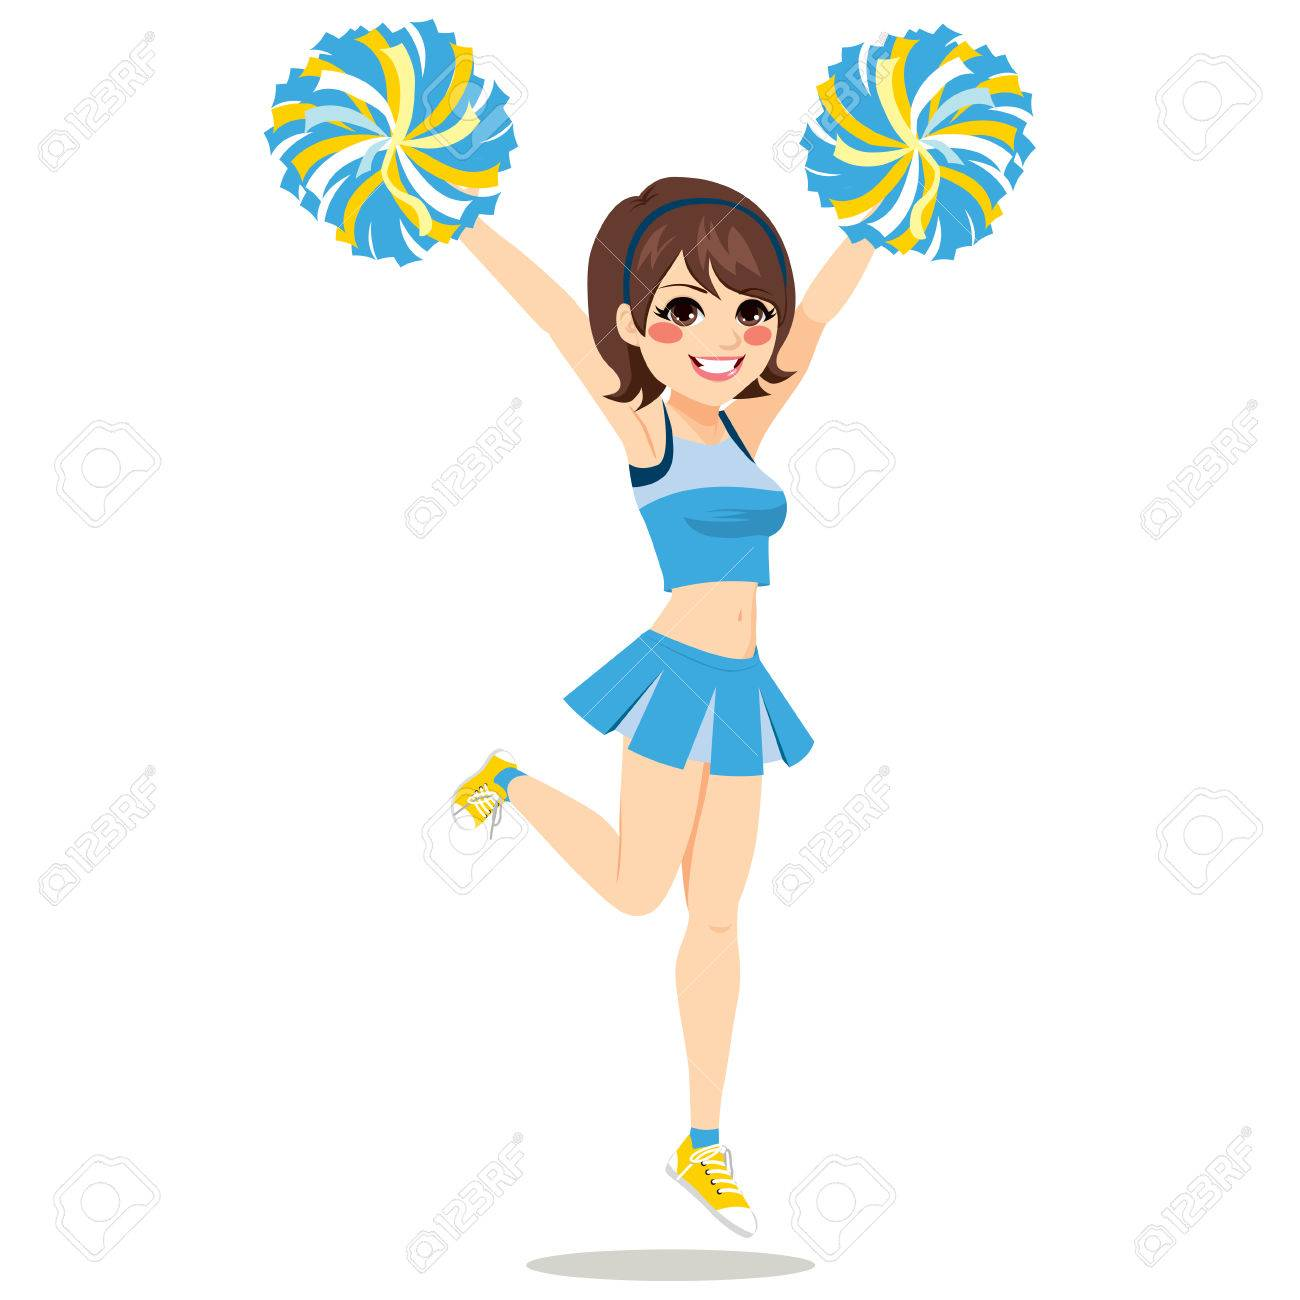 Happy Young Cheerleader Girl Jumping With Pom Poms On Blue Uniform Stock Vector 67961664